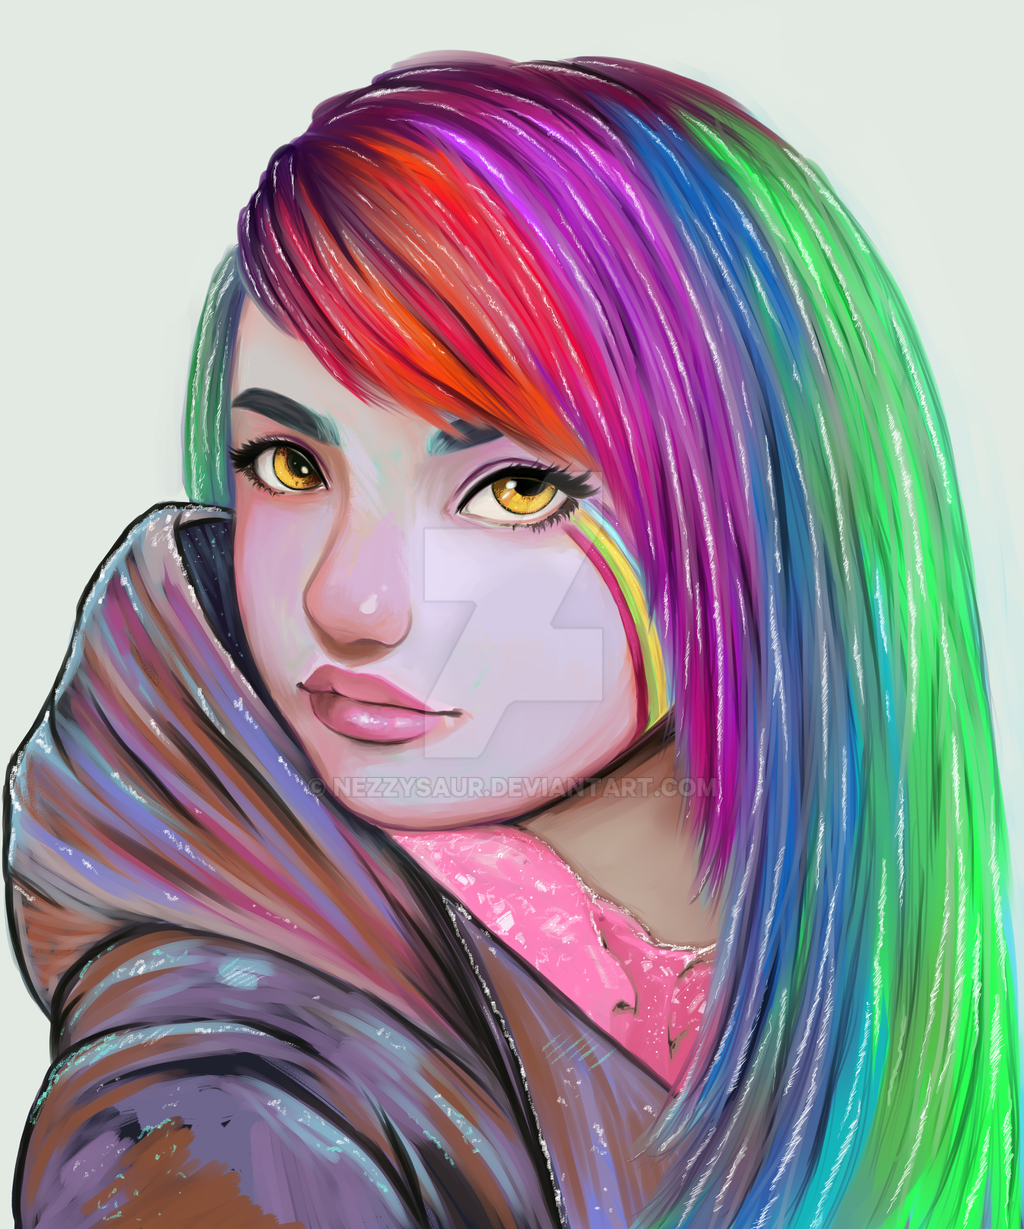 Rainbow by nezzysaur